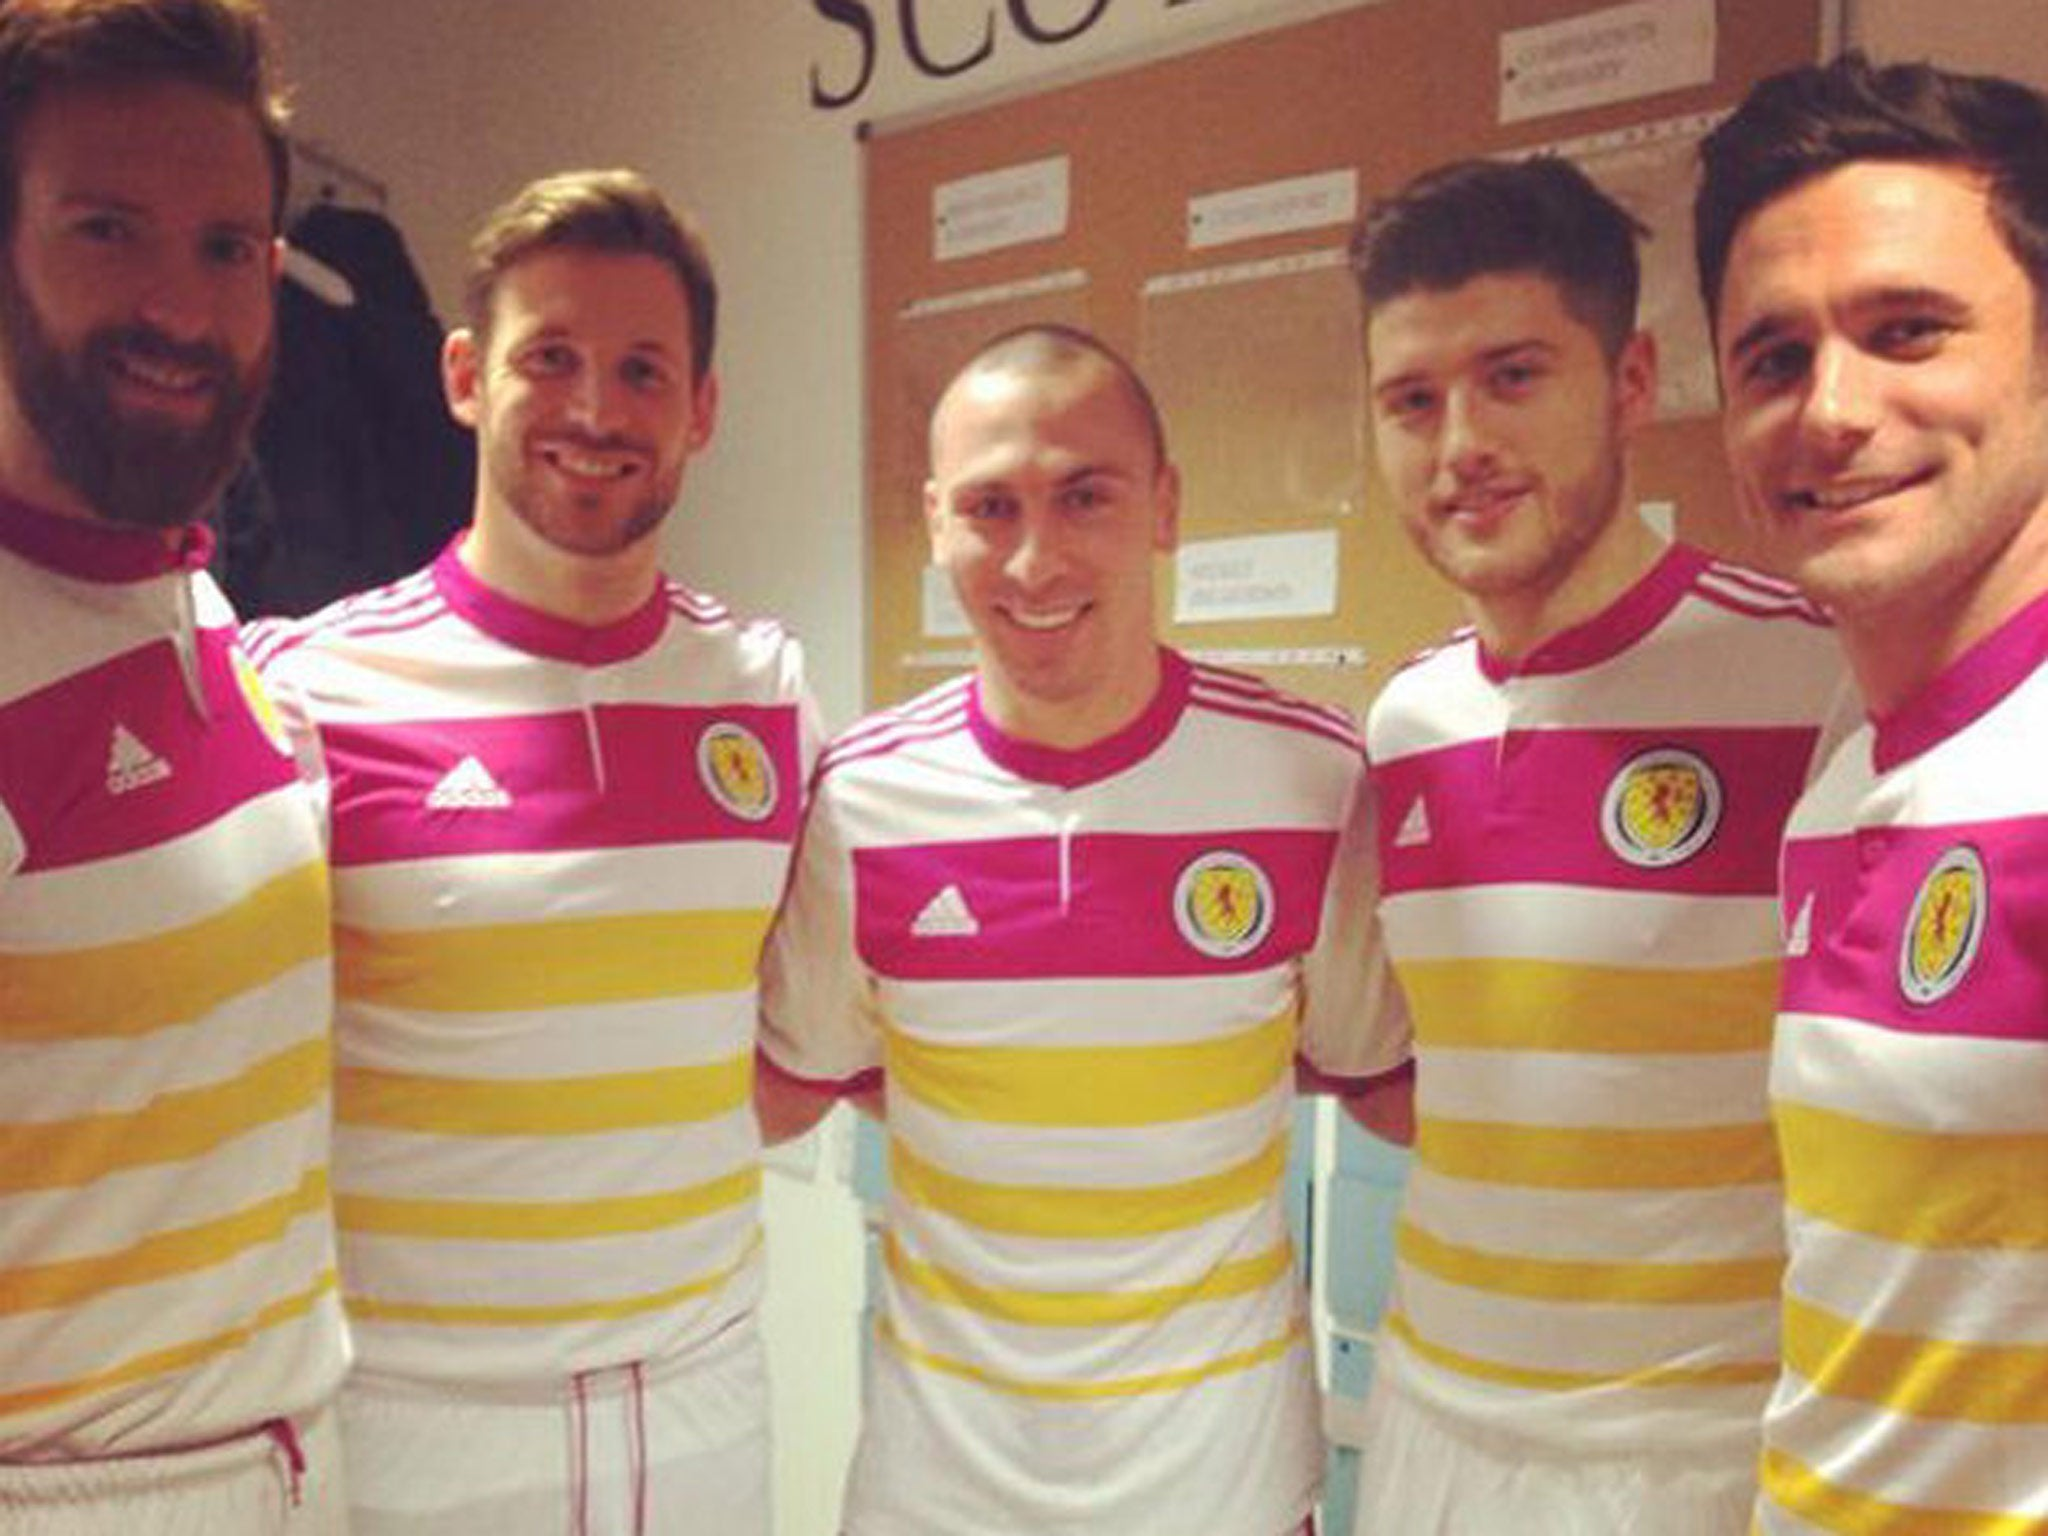 Scotland away kit: Pink and yellow strip receives mixed reception ...